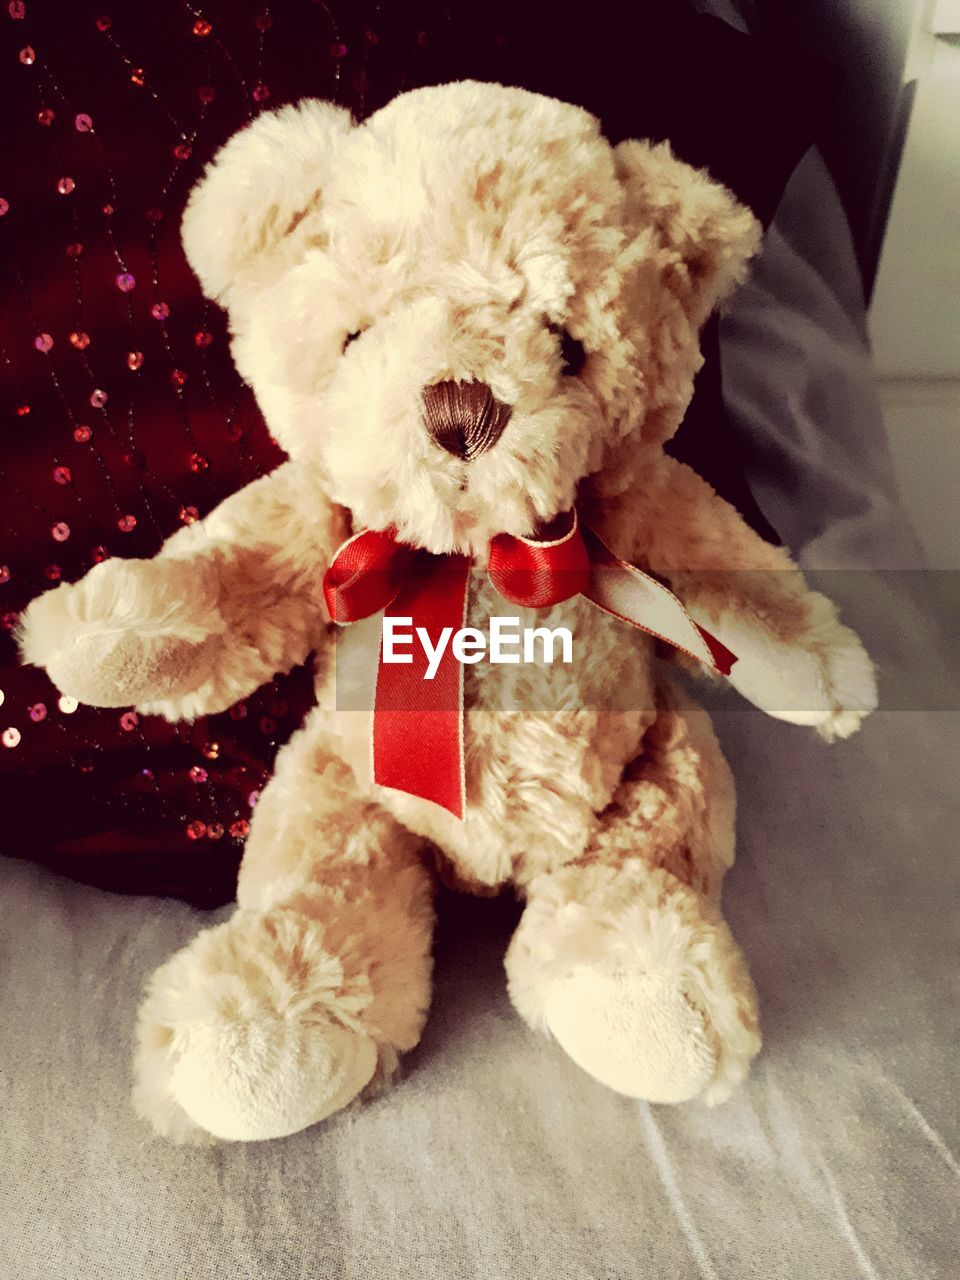 dog, one animal, pets, domestic animals, indoors, mammal, animal themes, cute, red, sitting, teddy bear, stuffed toy, close-up, no people, day